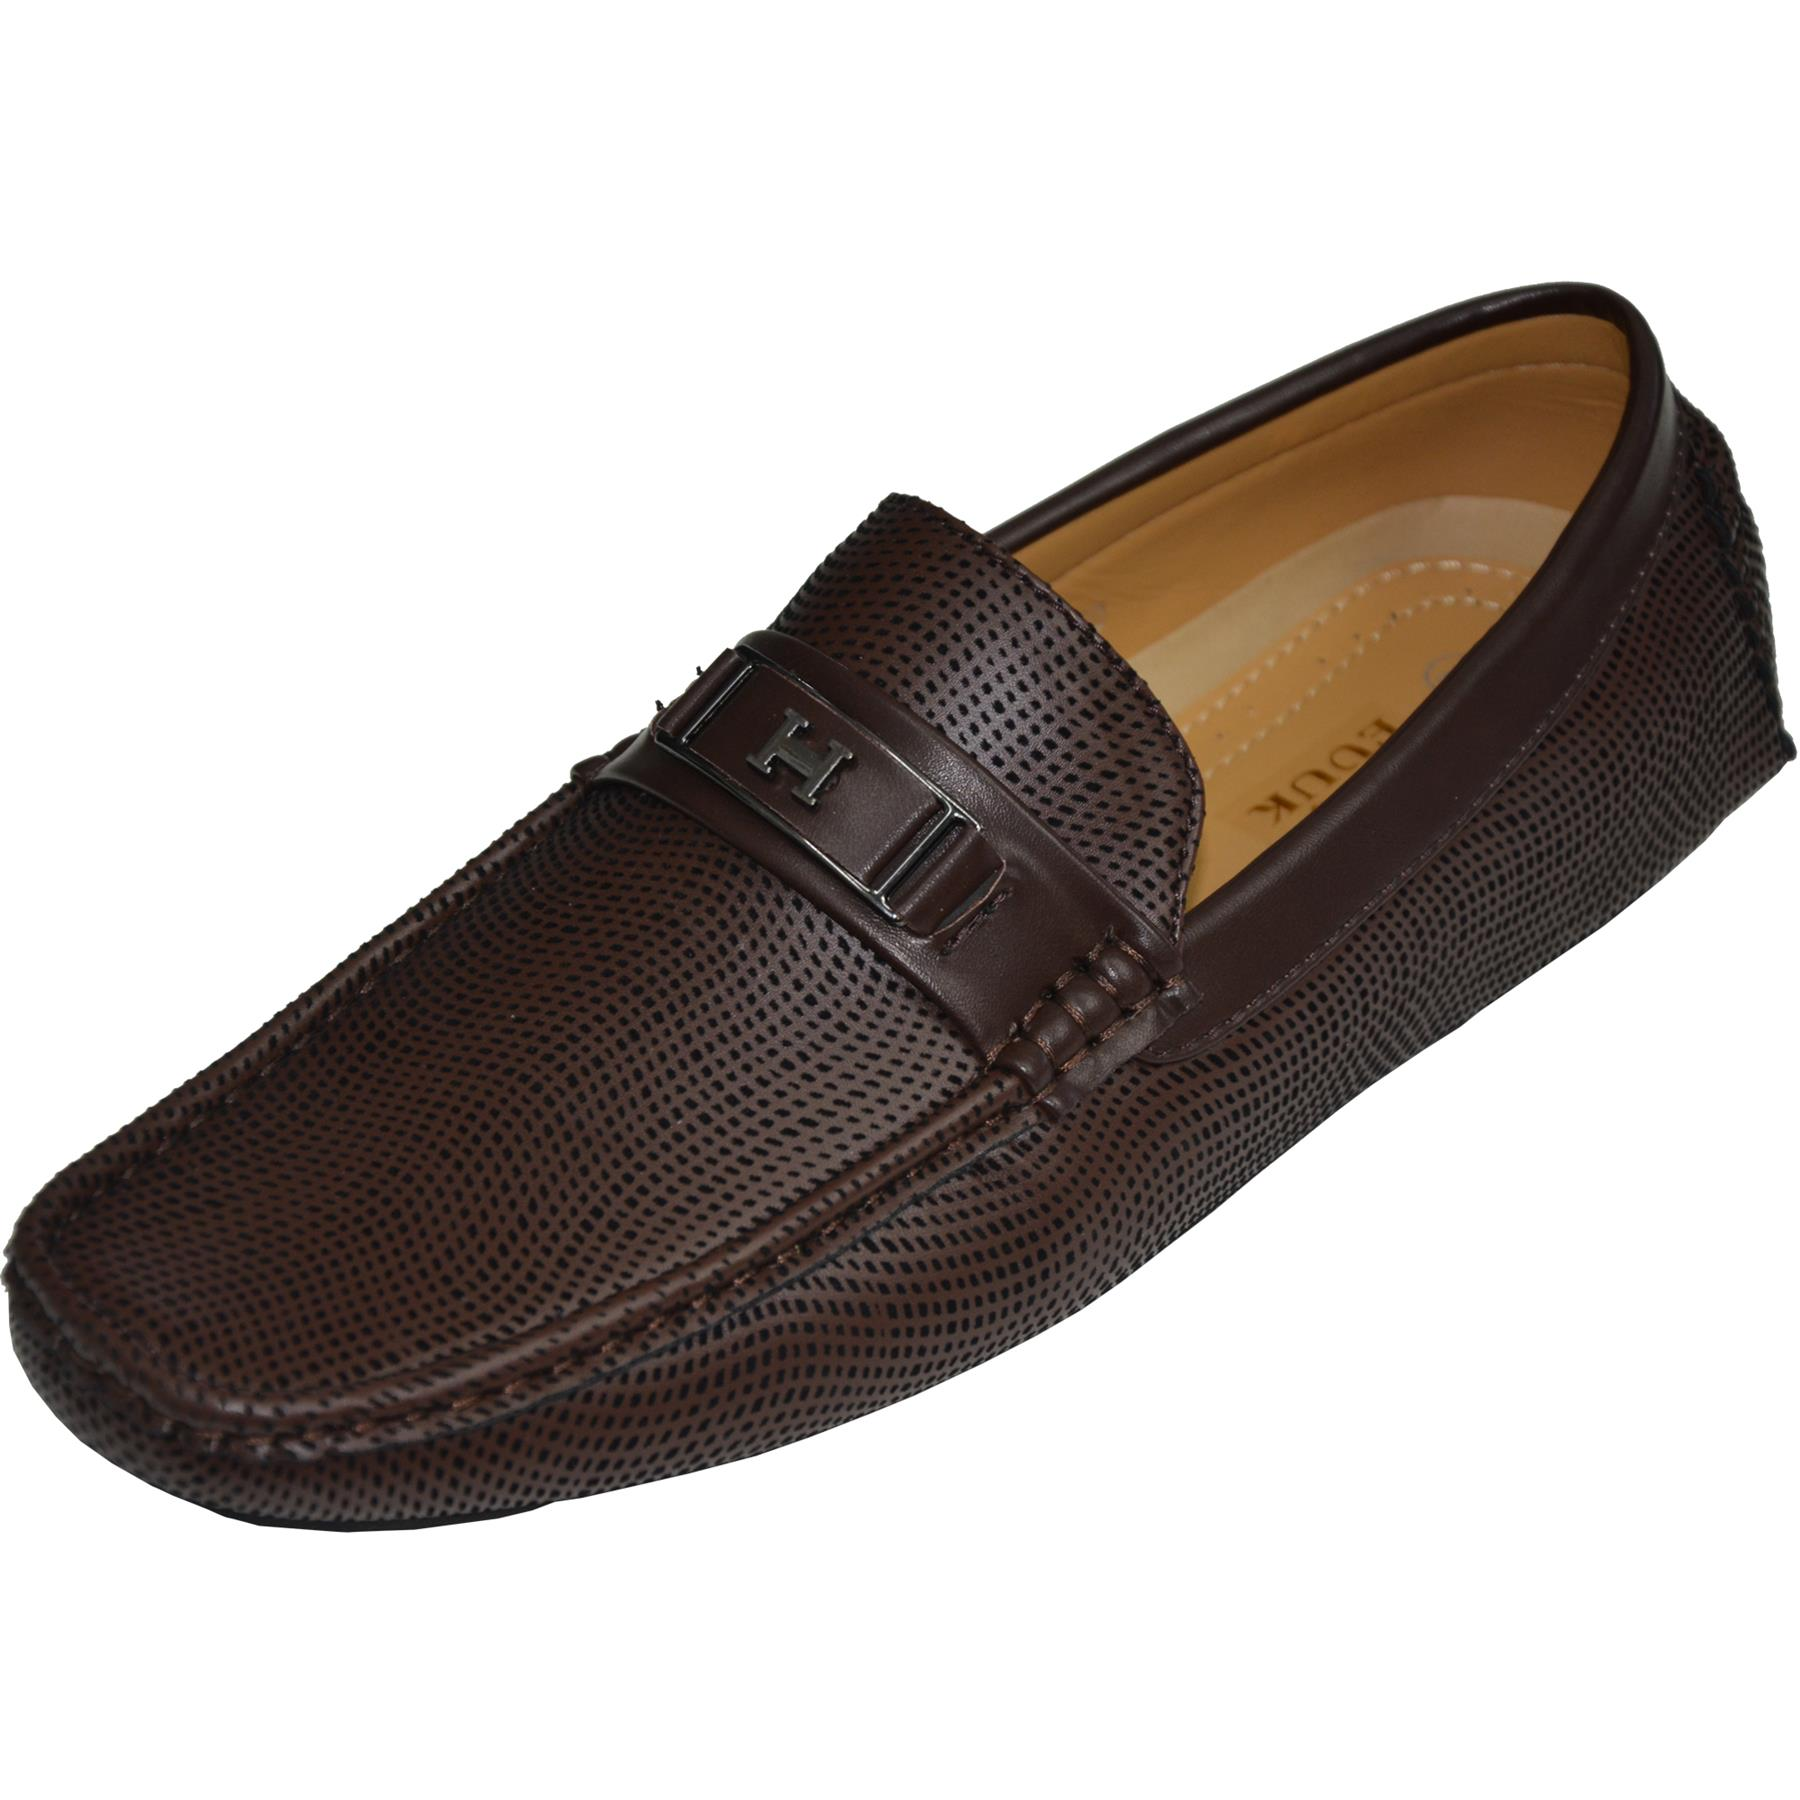 Mens-Slip-Ons-Shoes-Boat-Deck-Driving-Smart-Buckle-Moccasins-Suede-Look-Loafers thumbnail 16